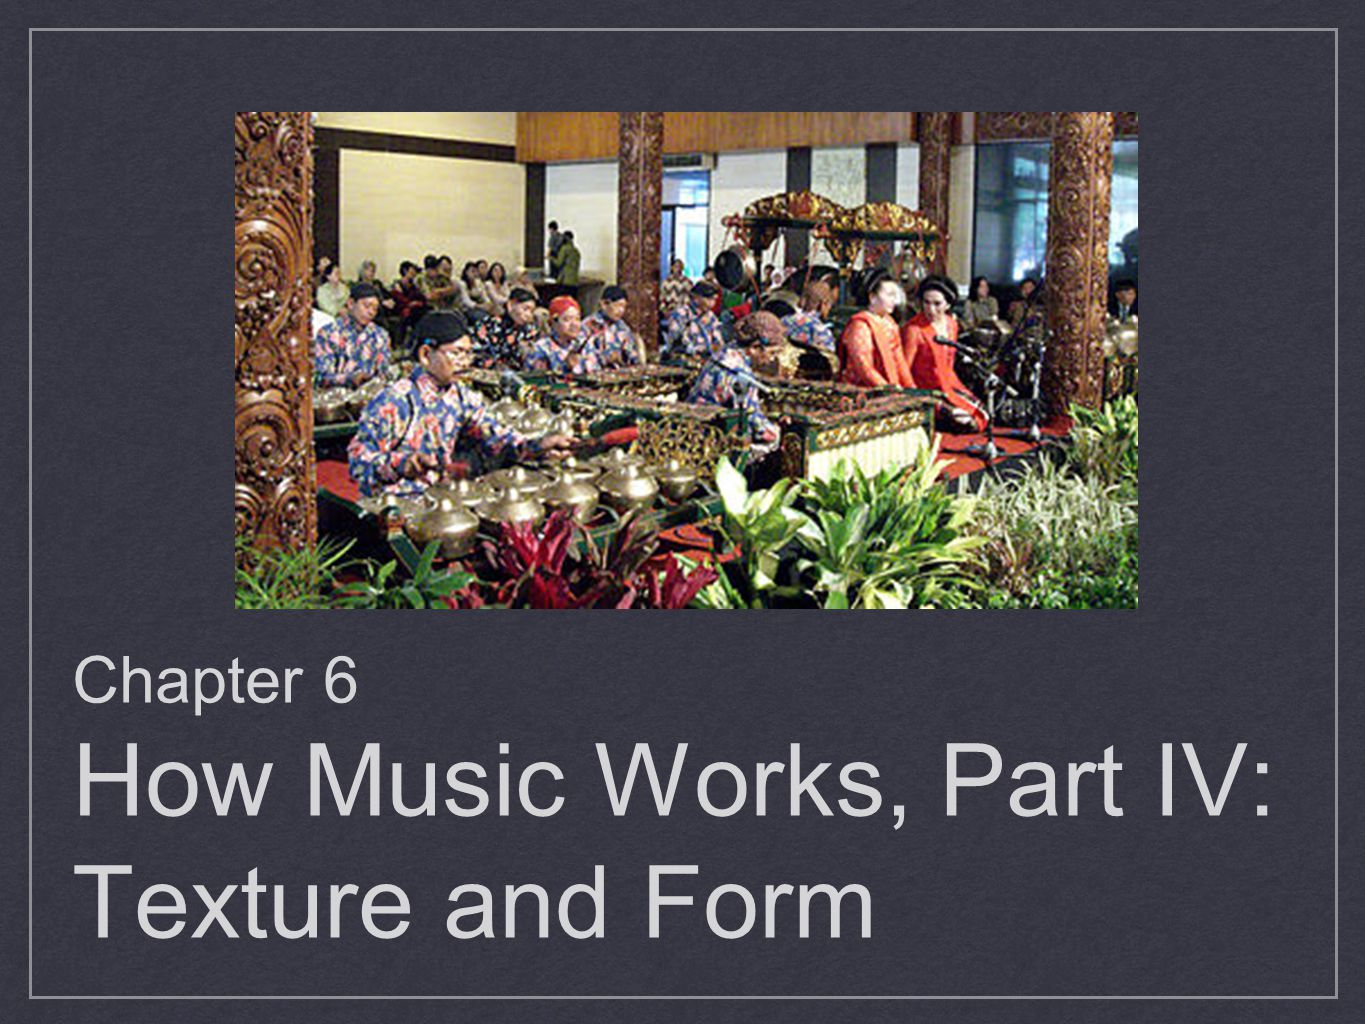 Chapter 6 How Music Works, Part IV: Texture and Form